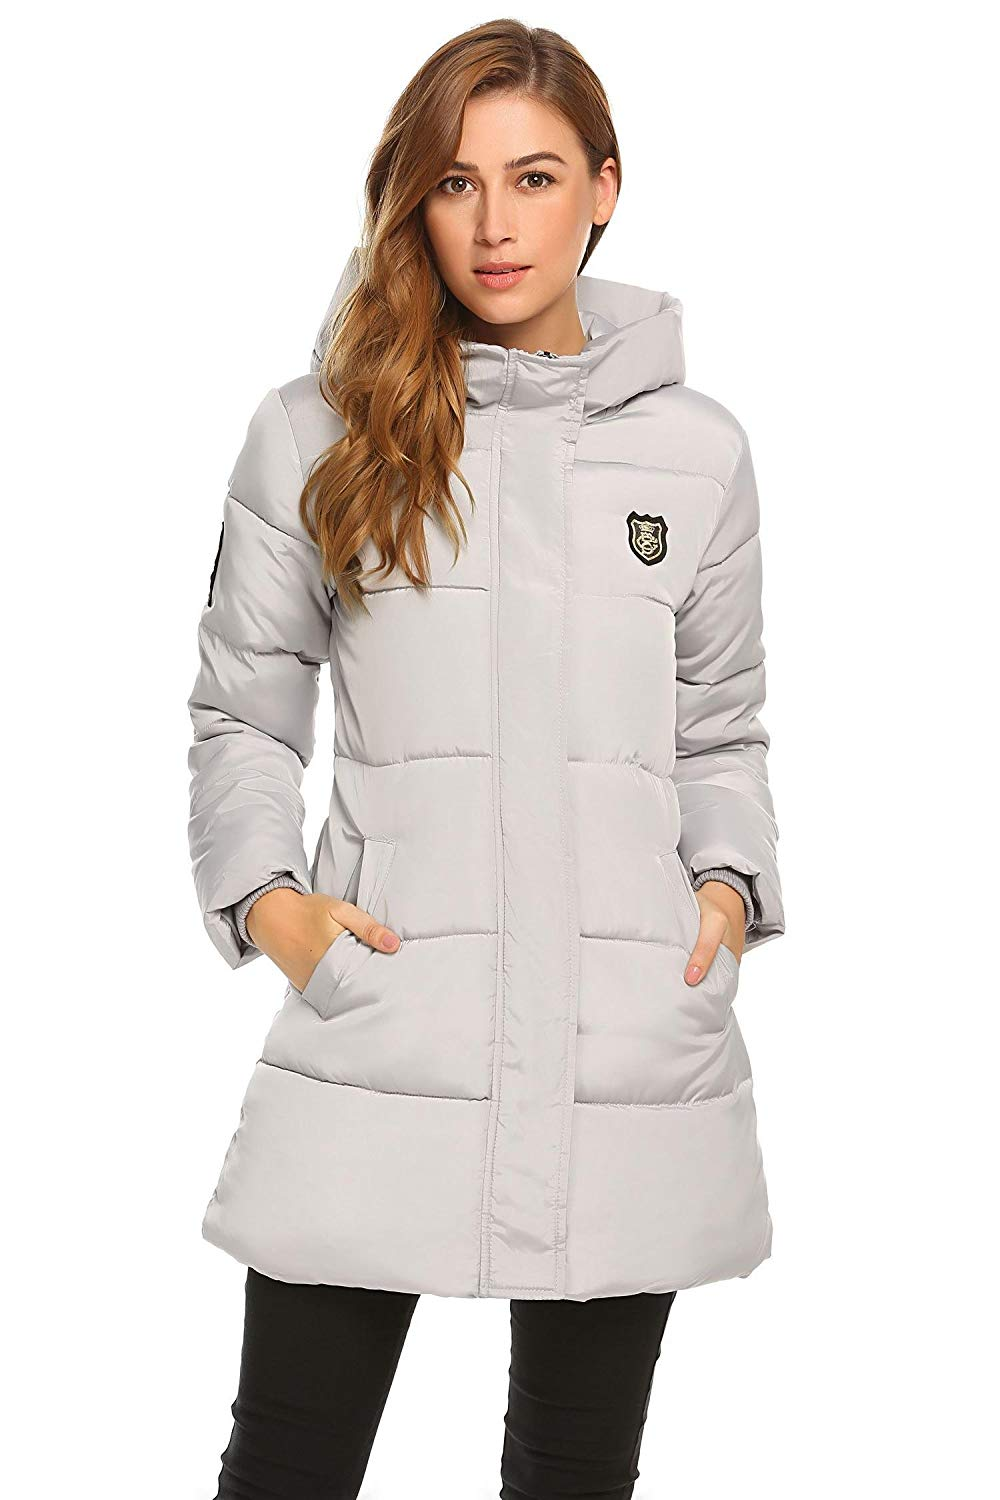 8a91cd3e8d0 Get Quotations · Etuoji Women Hooded Long Sleeve Solid Zip-up Quilted  Cotton Padded Jacket